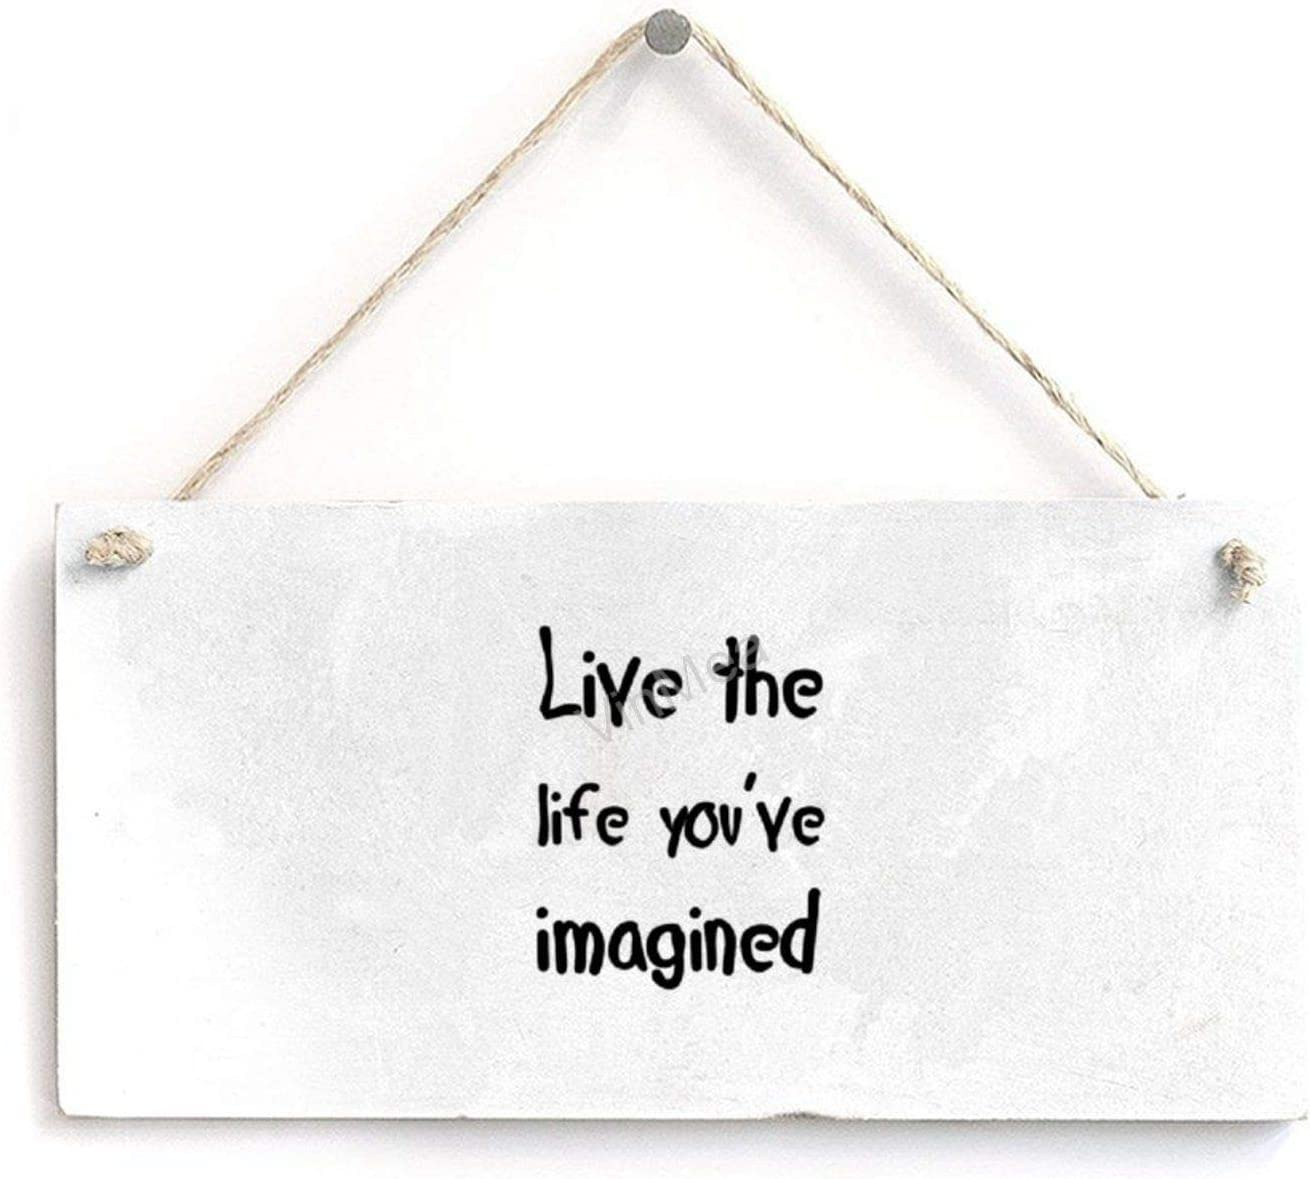 VinMea Wood Sign Live The Life You've Imagined Hanging Wood Plaque with Rope Wall Art Home Decor, 8 x 4''